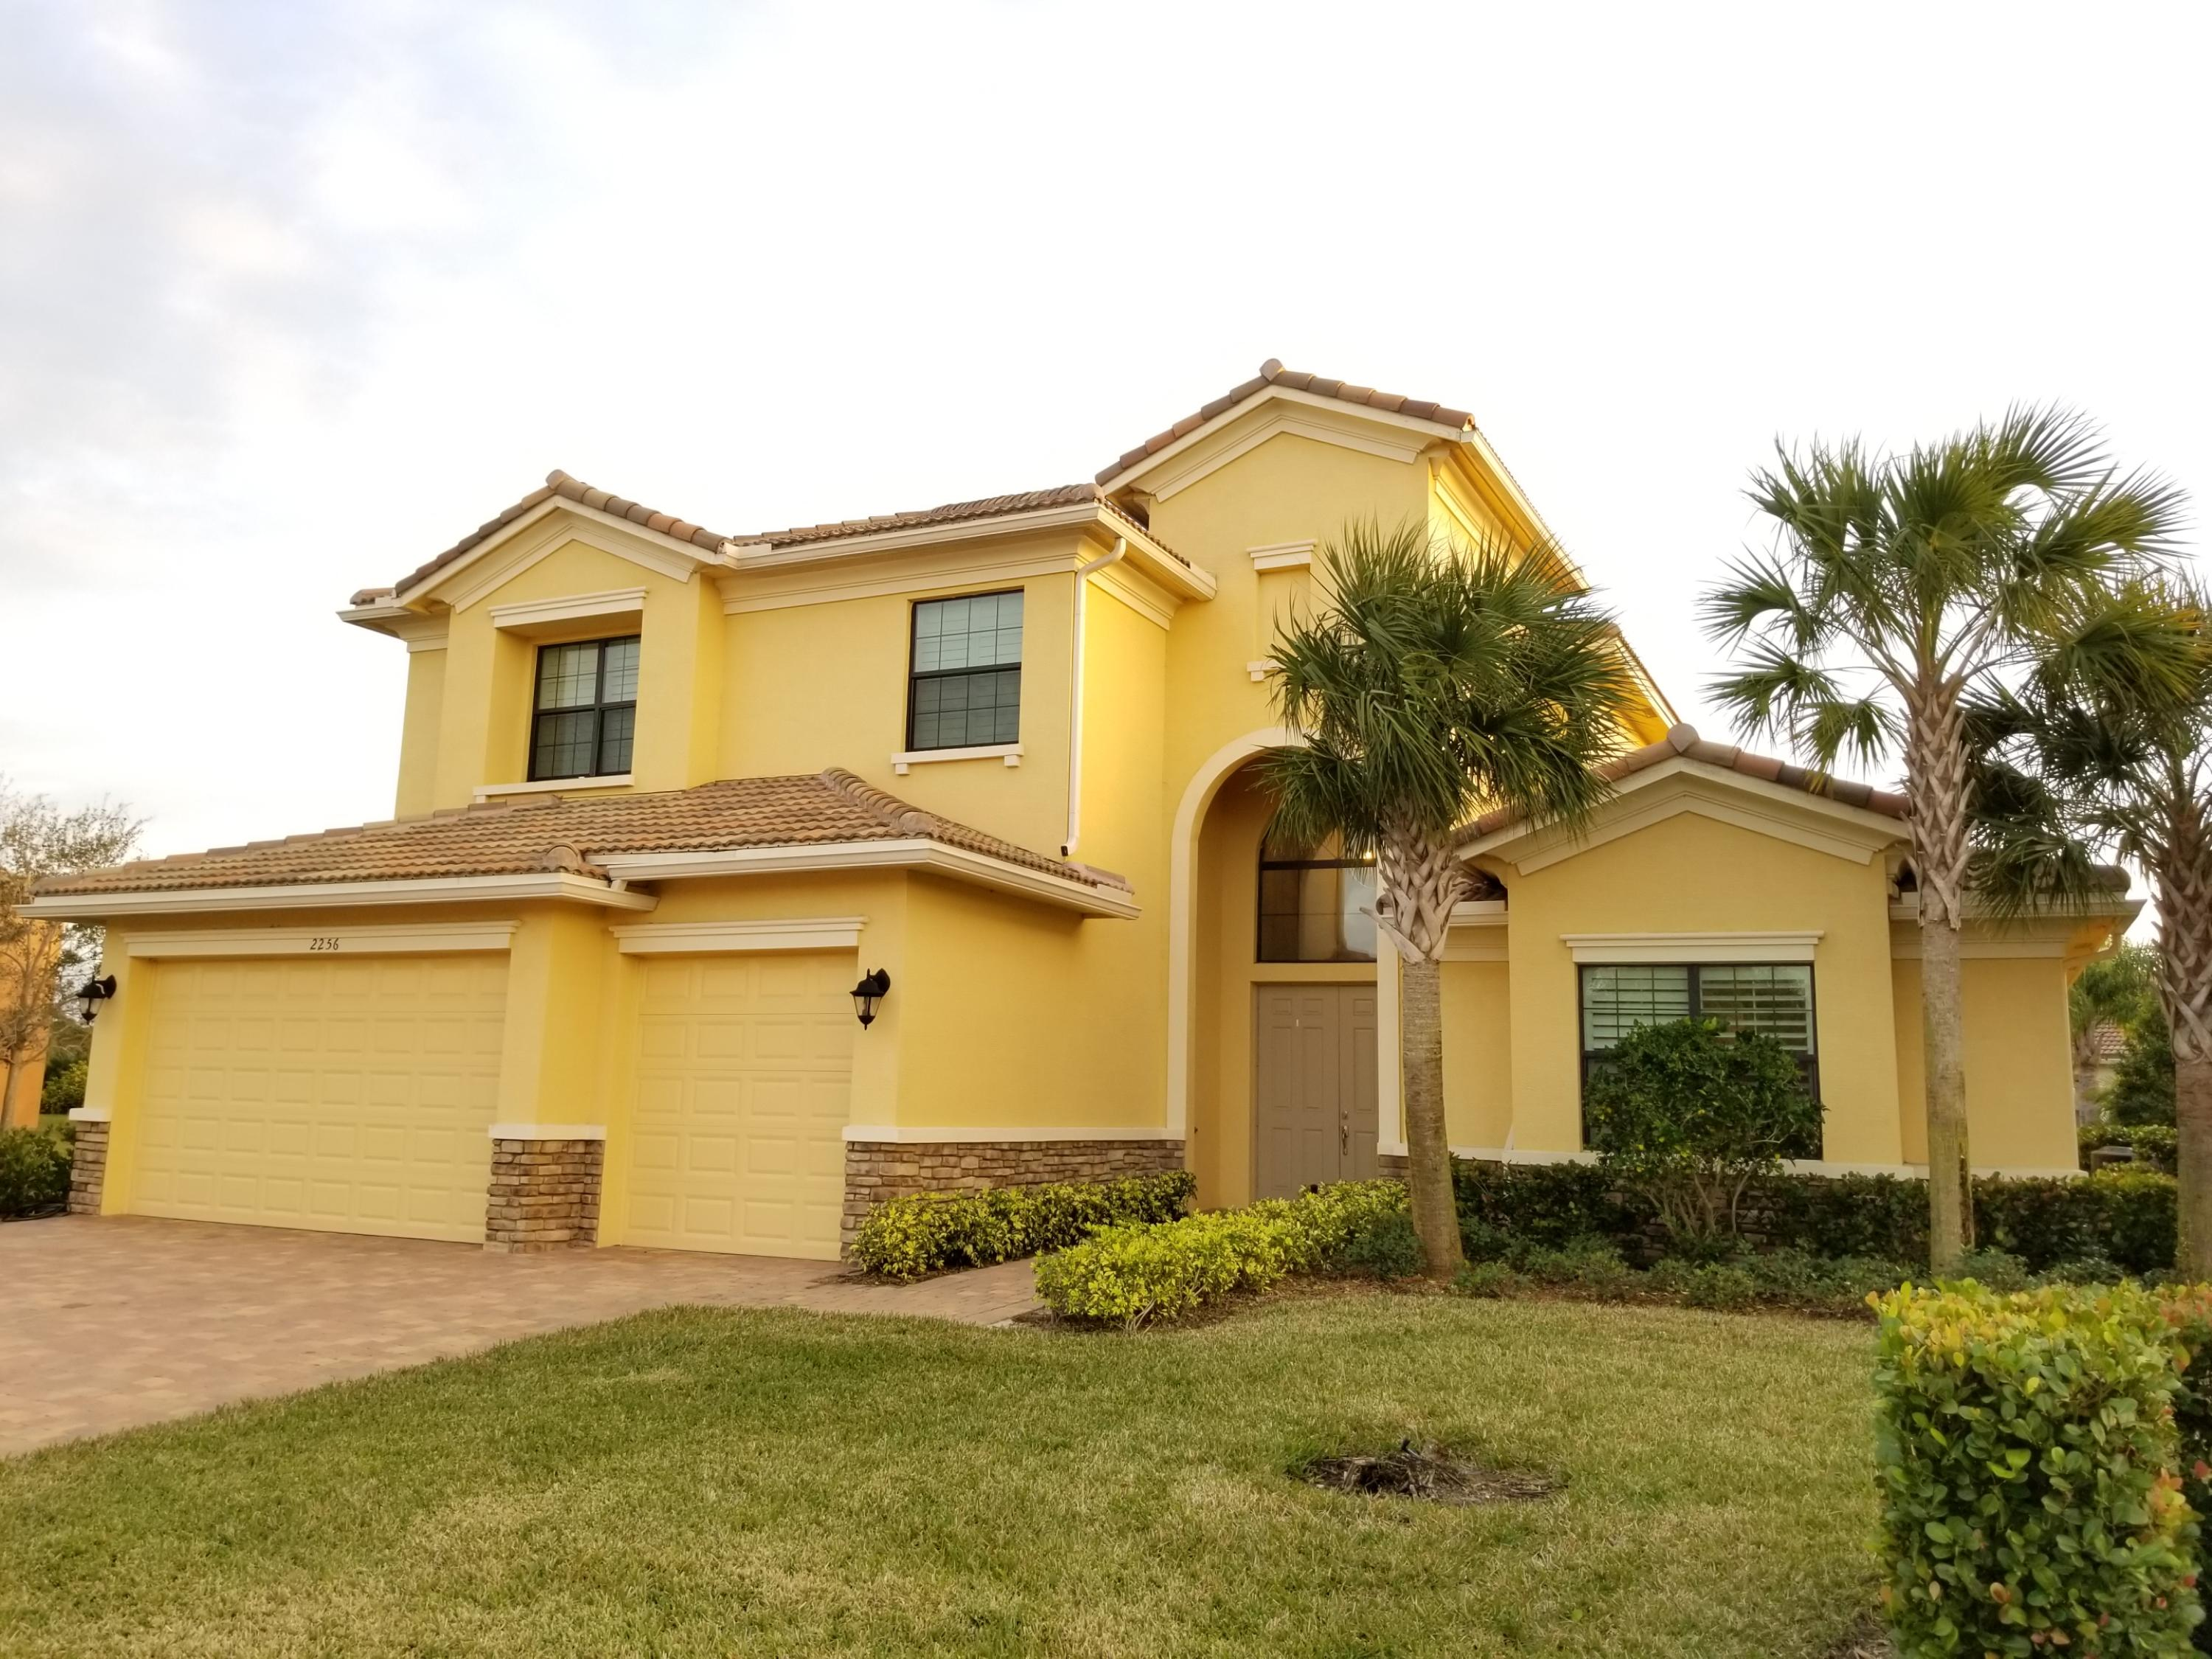 2256 Diamond Creek Jensen Beach 34957